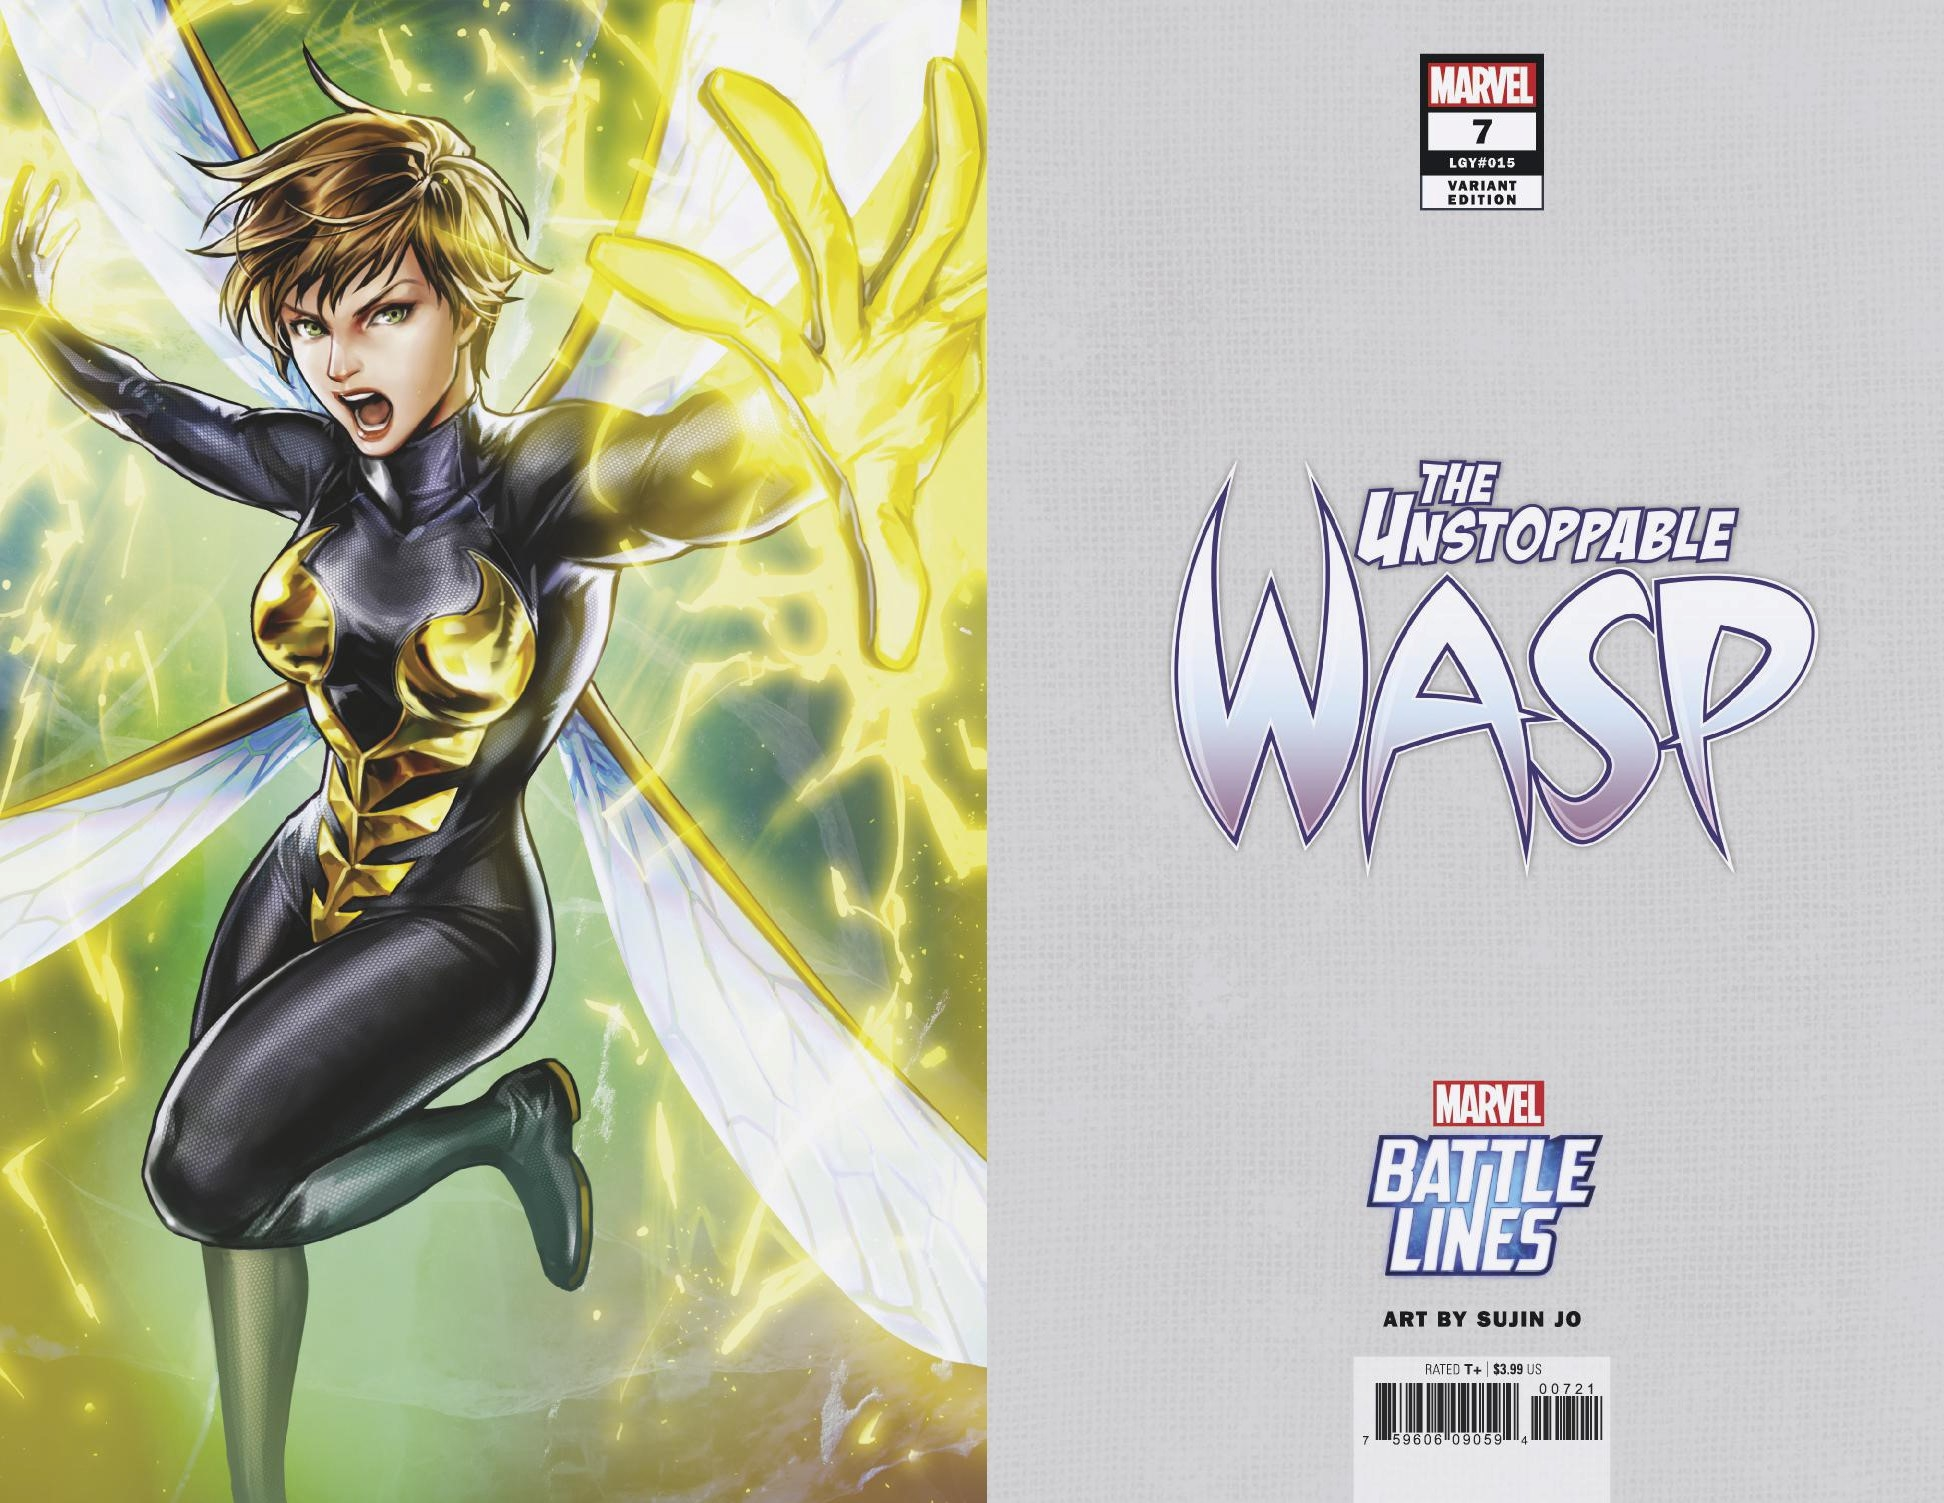 UNSTOPPABLE WASP #7 SUJIN JO MARVEL BATTLE LINES VAR